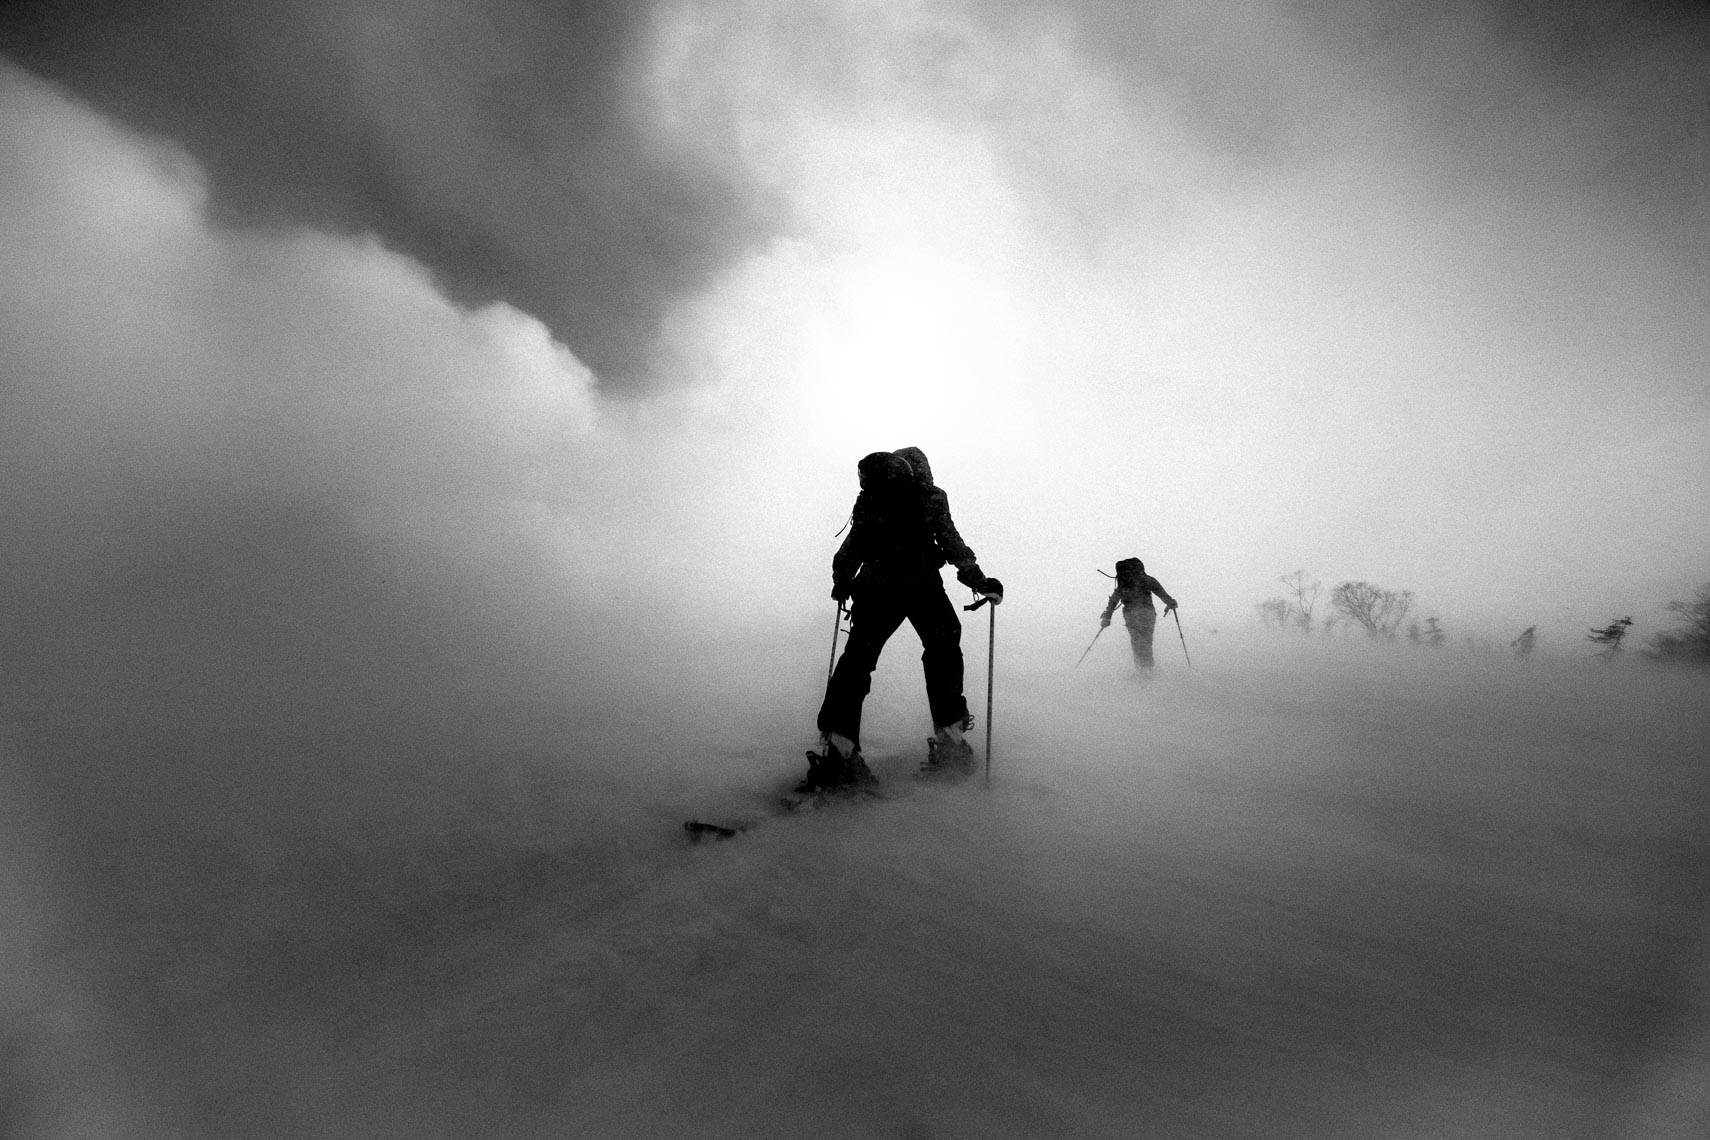 Black and white silhouette ski touring uphill image shot by Whistler ski photographer